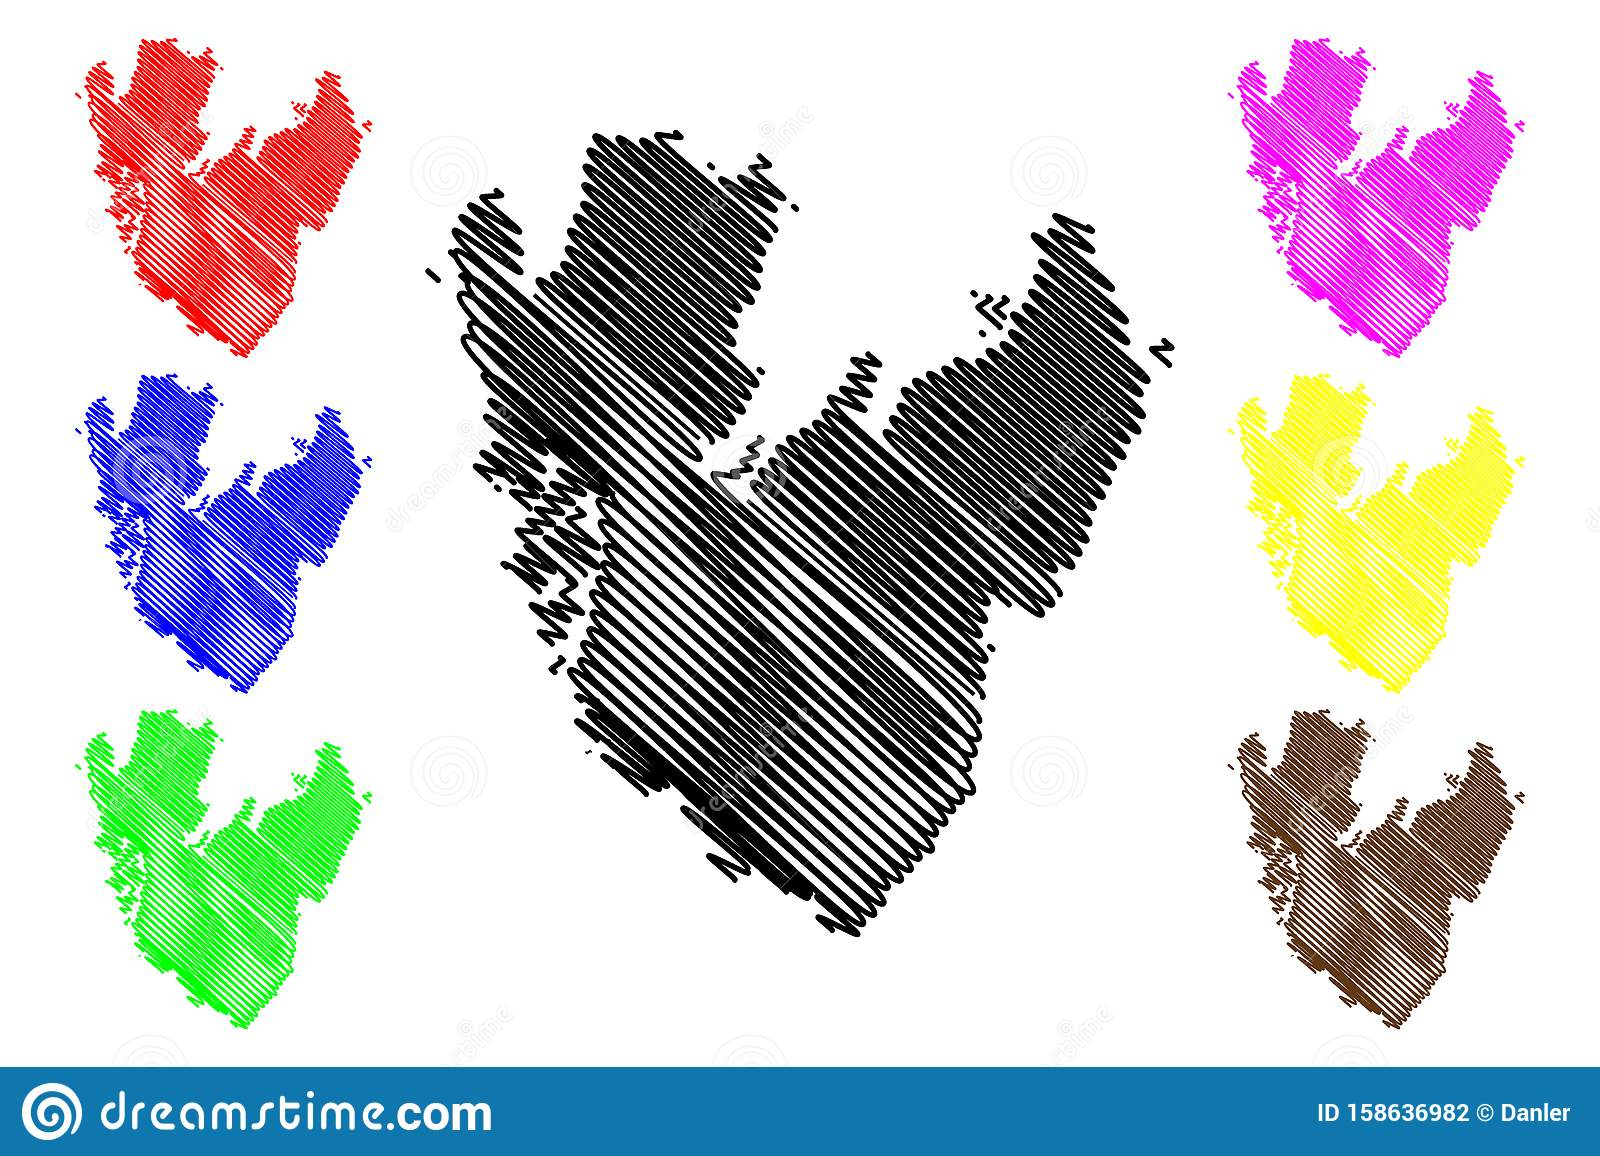 Gotaland Map Stock Illustrations 38 Gotaland Map Stock Illustrations Vectors Clipart Dreamstime